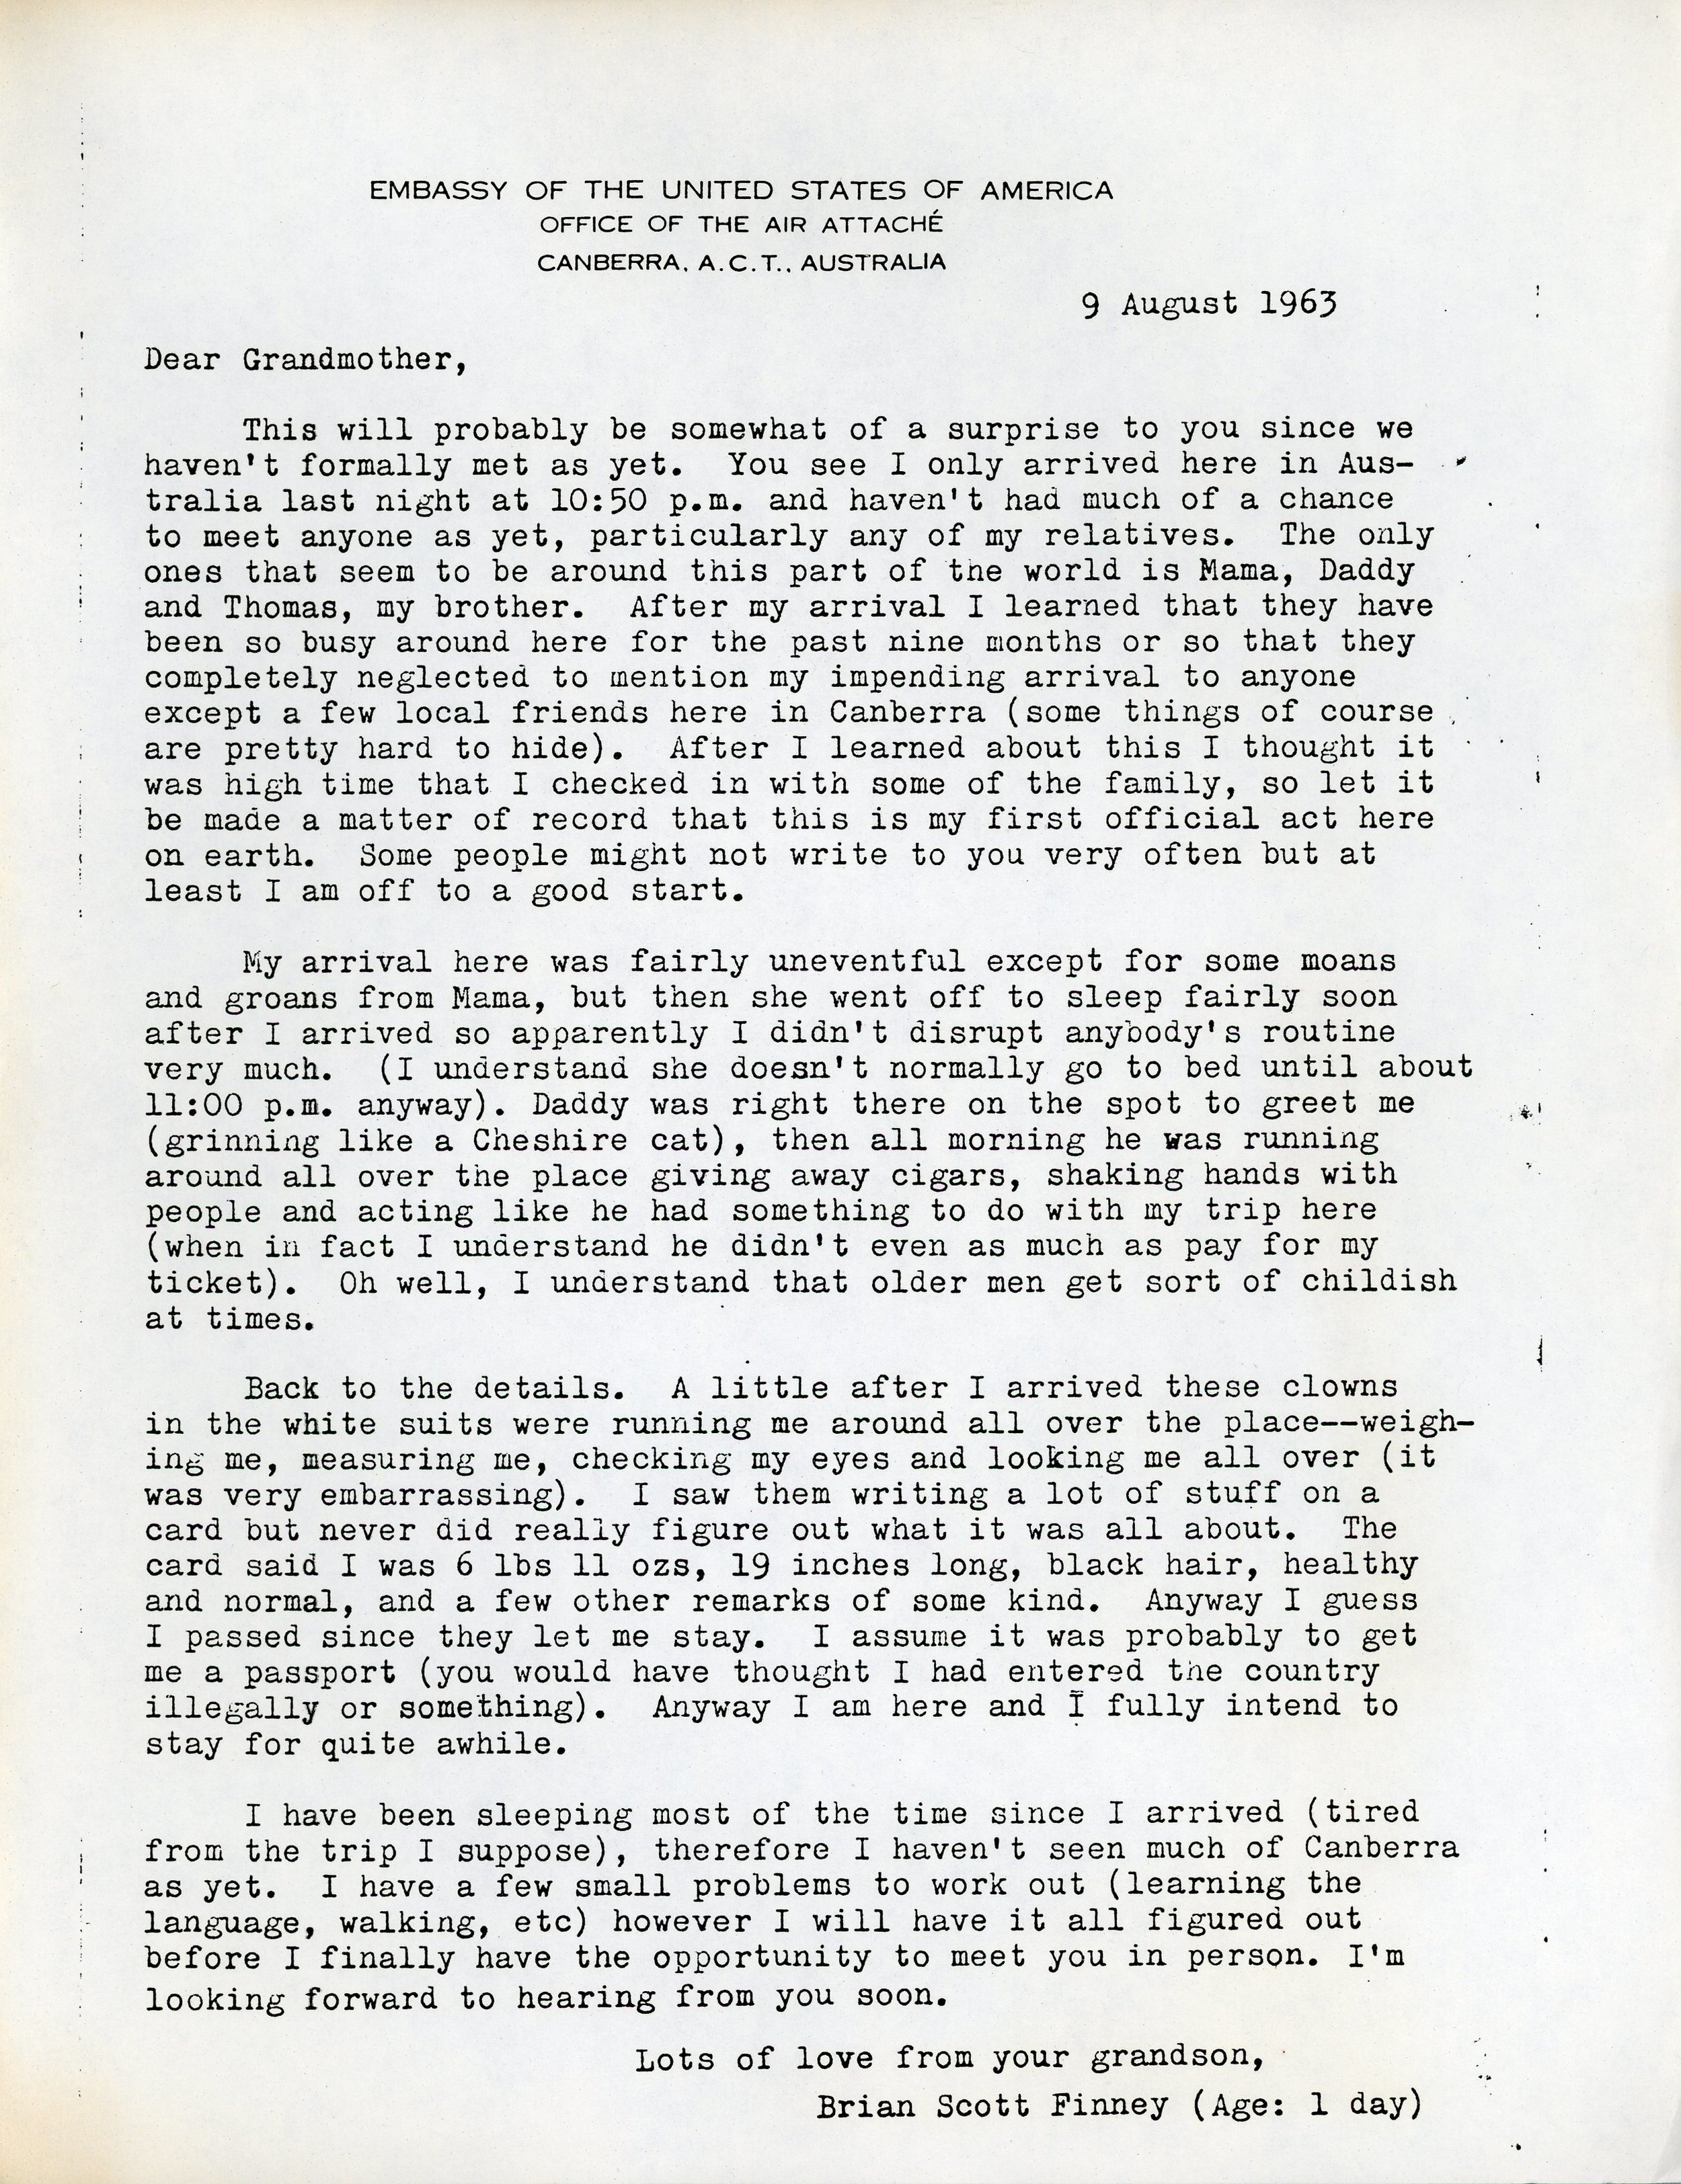 Letter announcing Brian's birth